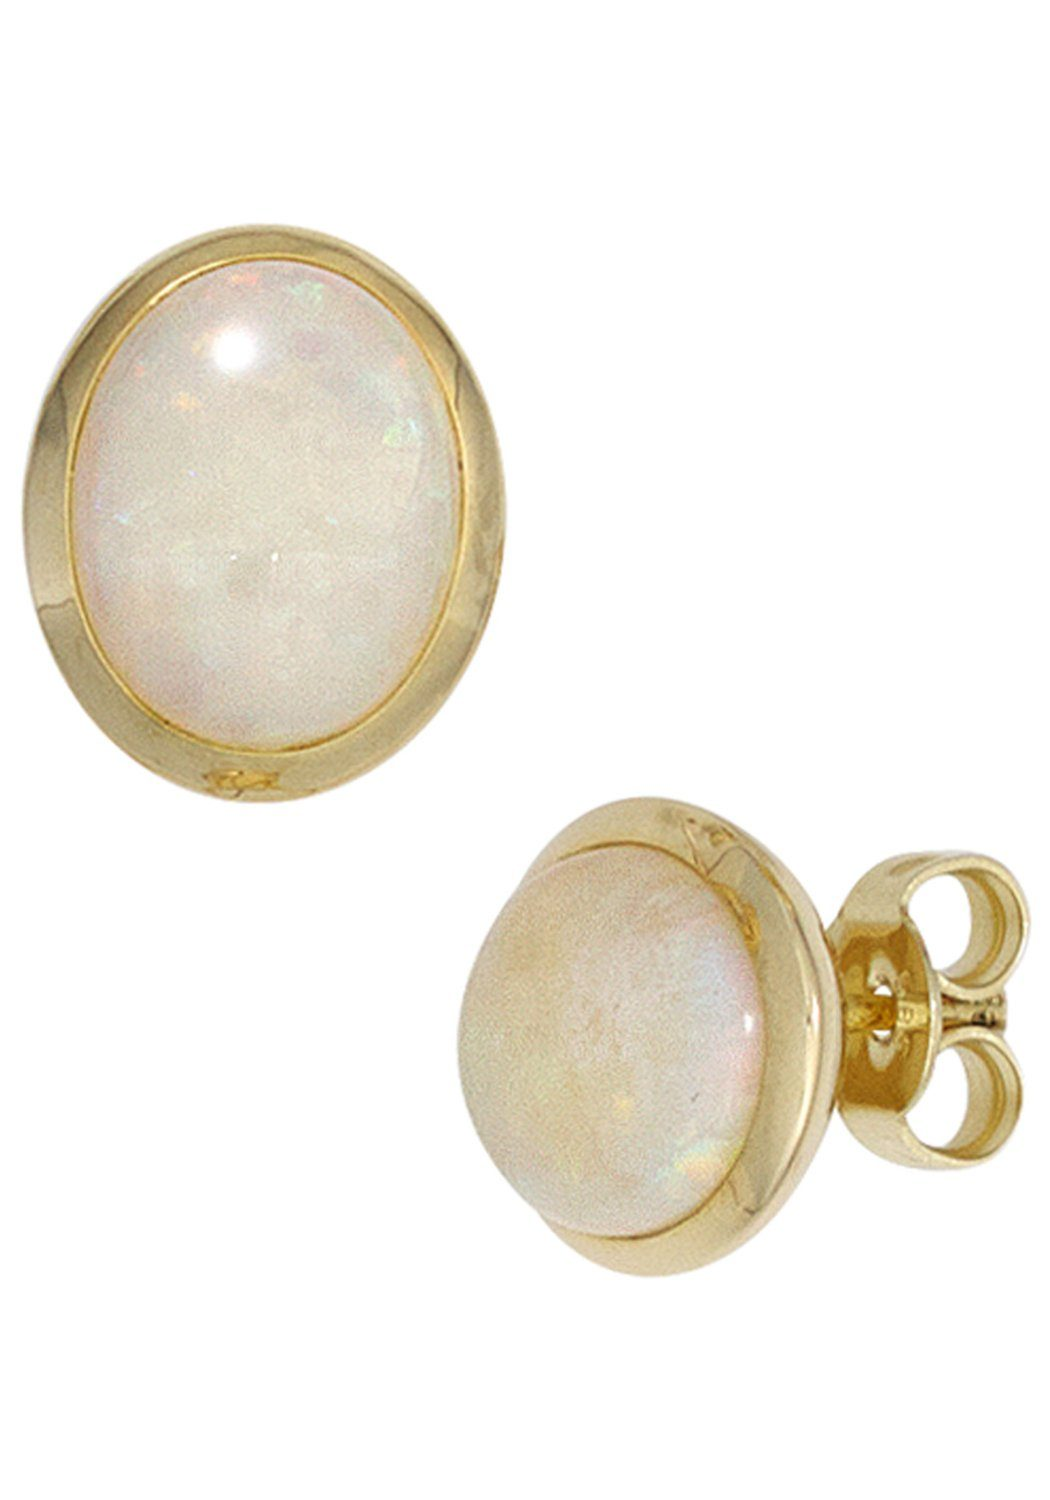 JOBO Paar Ohrstecker oval 585 Gold mit Opal-Cabochons